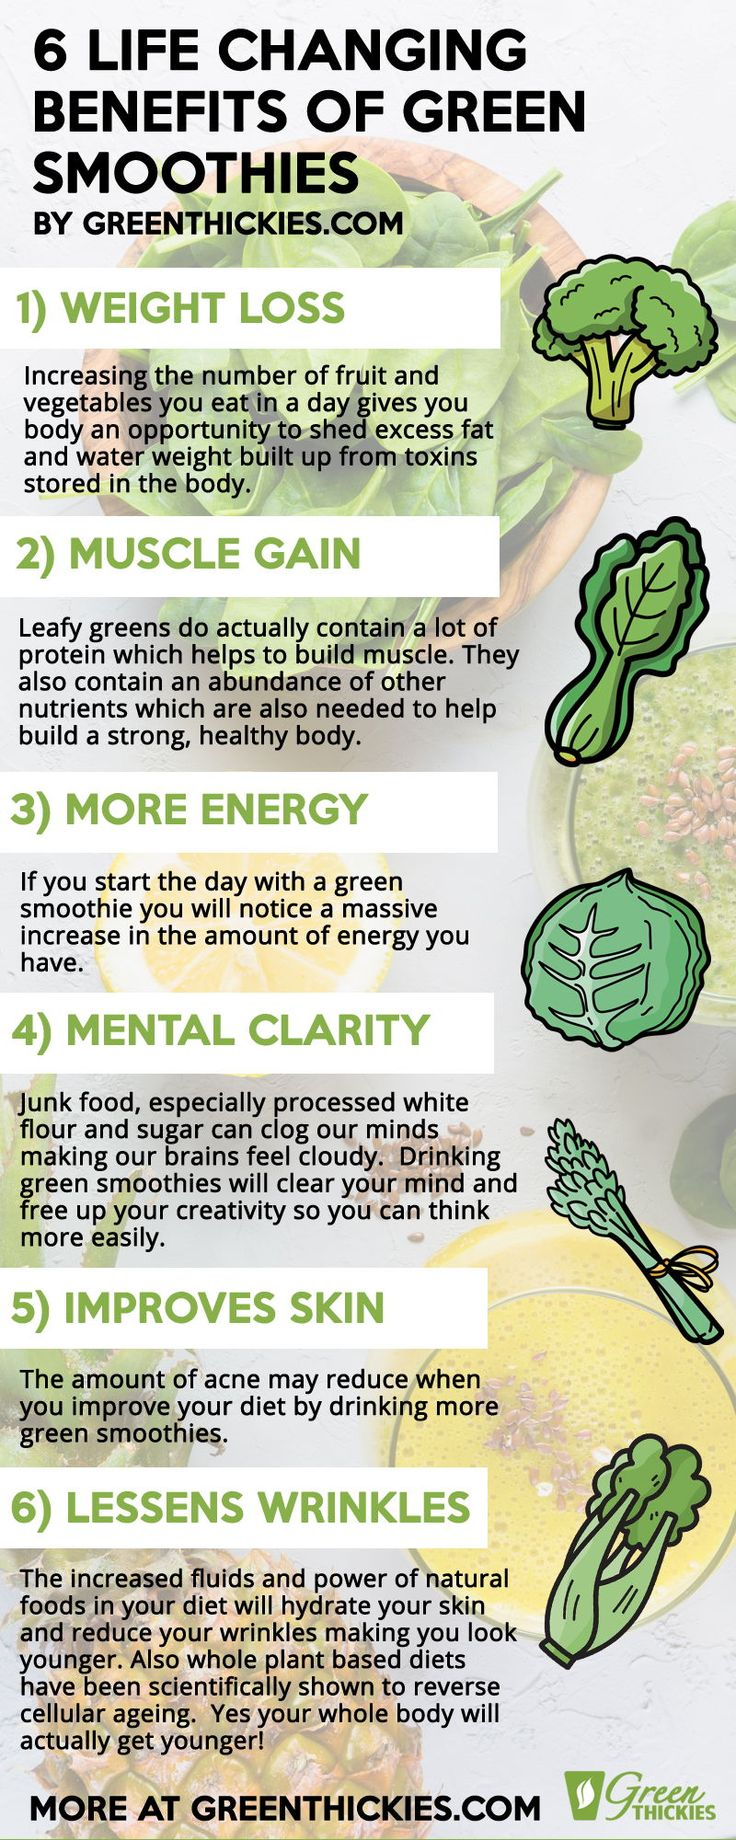 After drinking green smoothies every day for the last 10 years, I can honestly s…